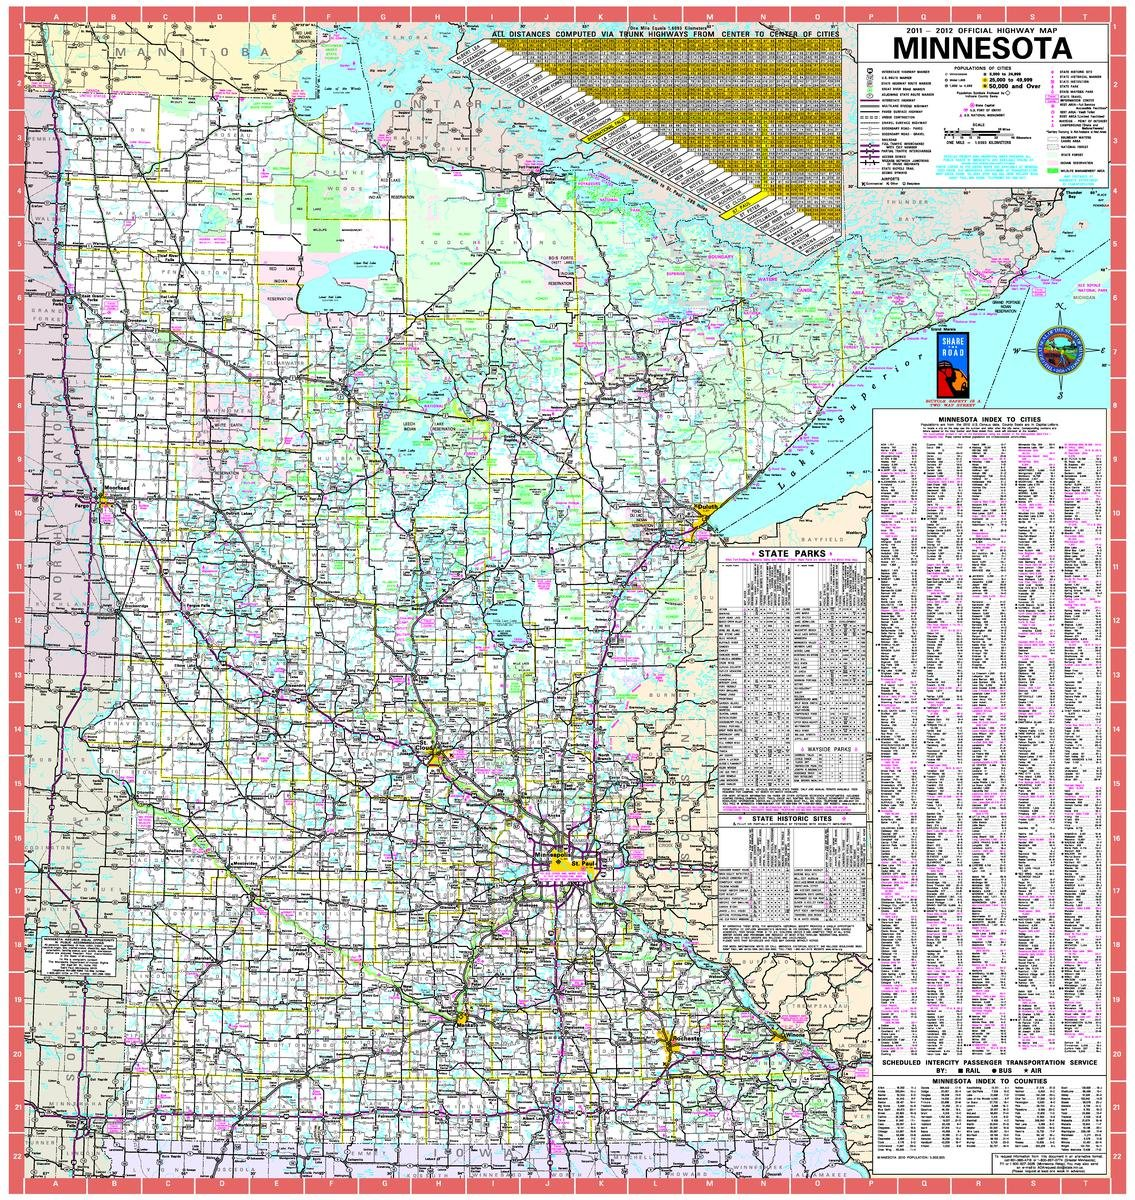 Gifts Delight Laminated 24x25 Poster: Road Map - Official Minnesota State  Highway Map